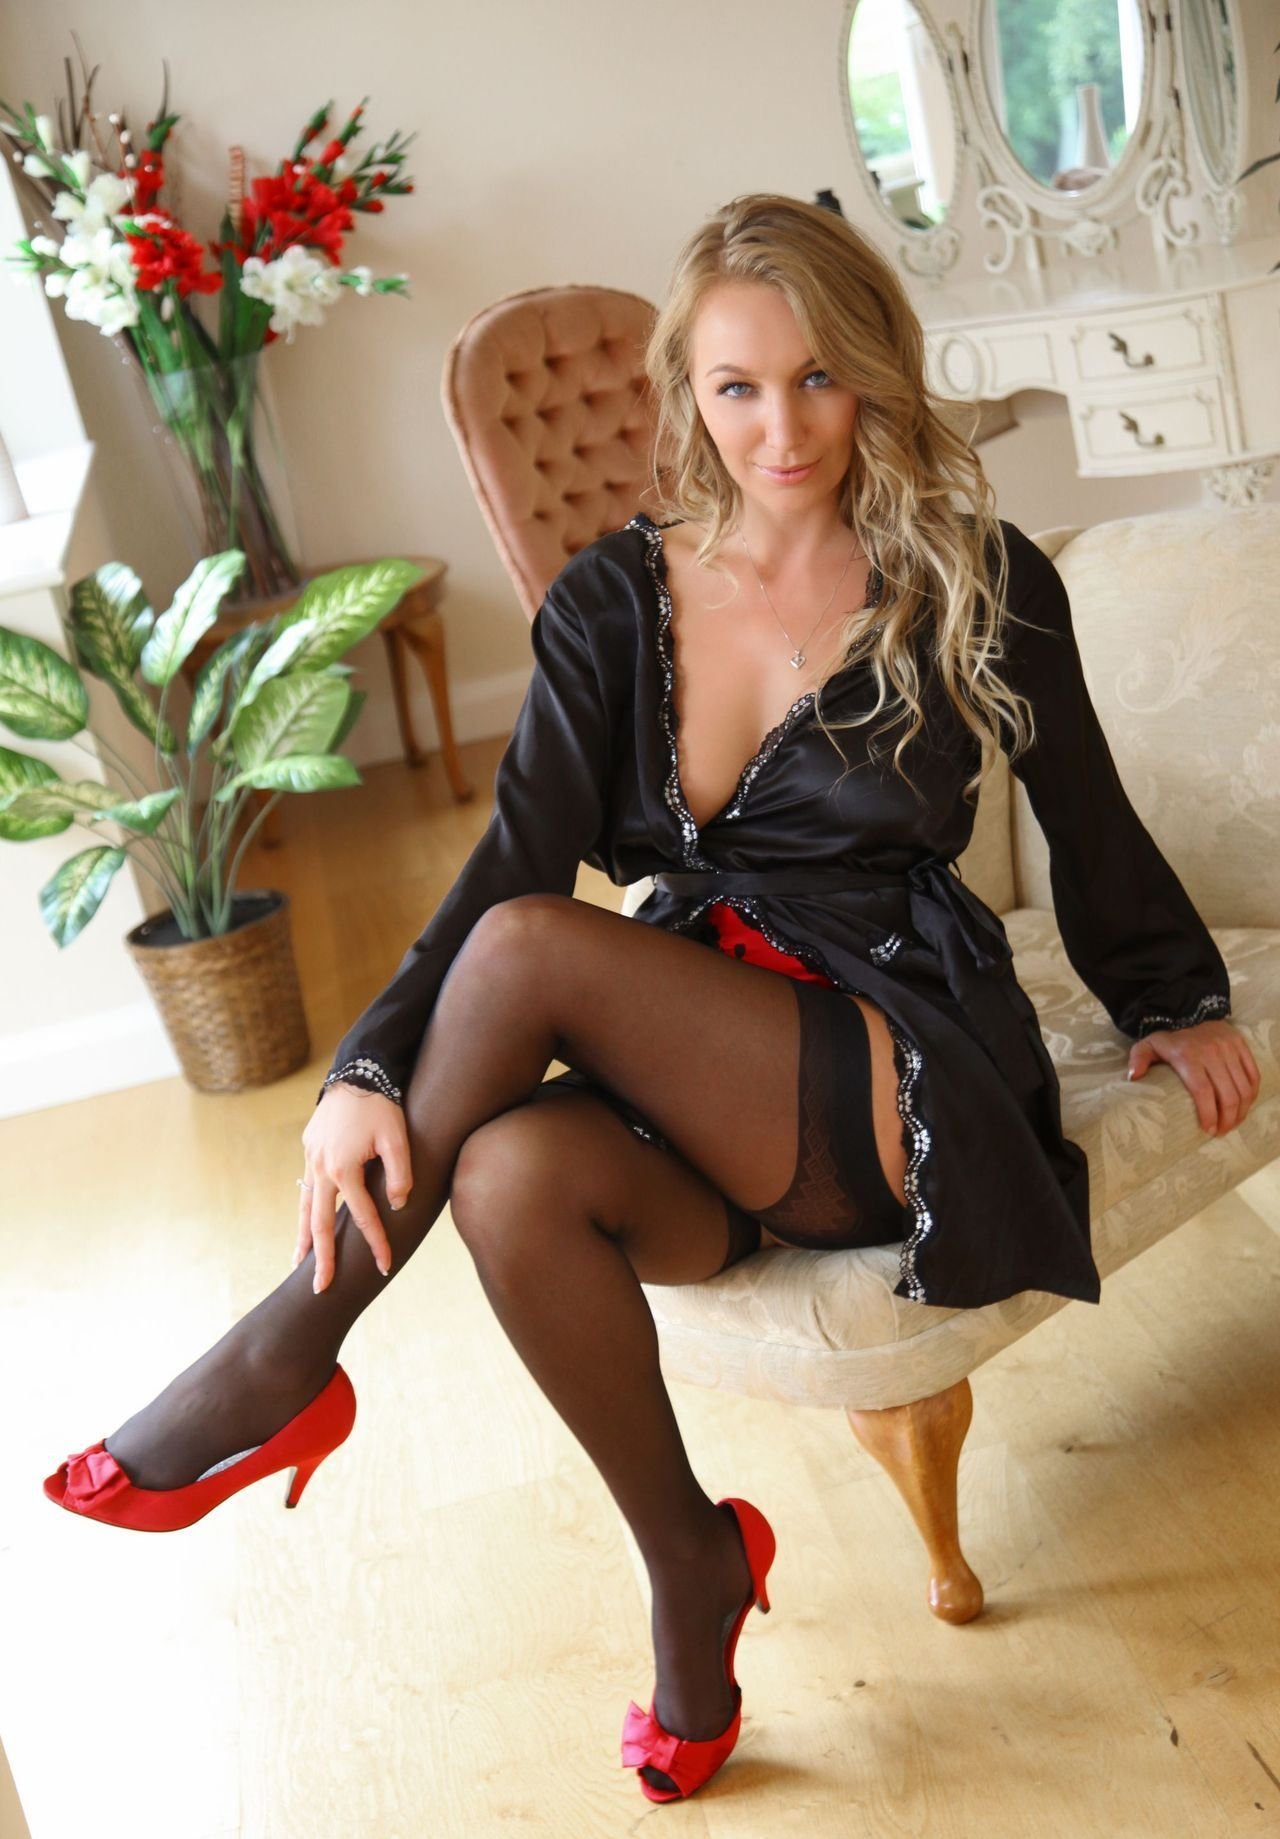 rio nido milf personals Meet jewish singles in rio nido, california online & connect in the chat rooms dhu is a 100% free dating site to find single jewish women & men.